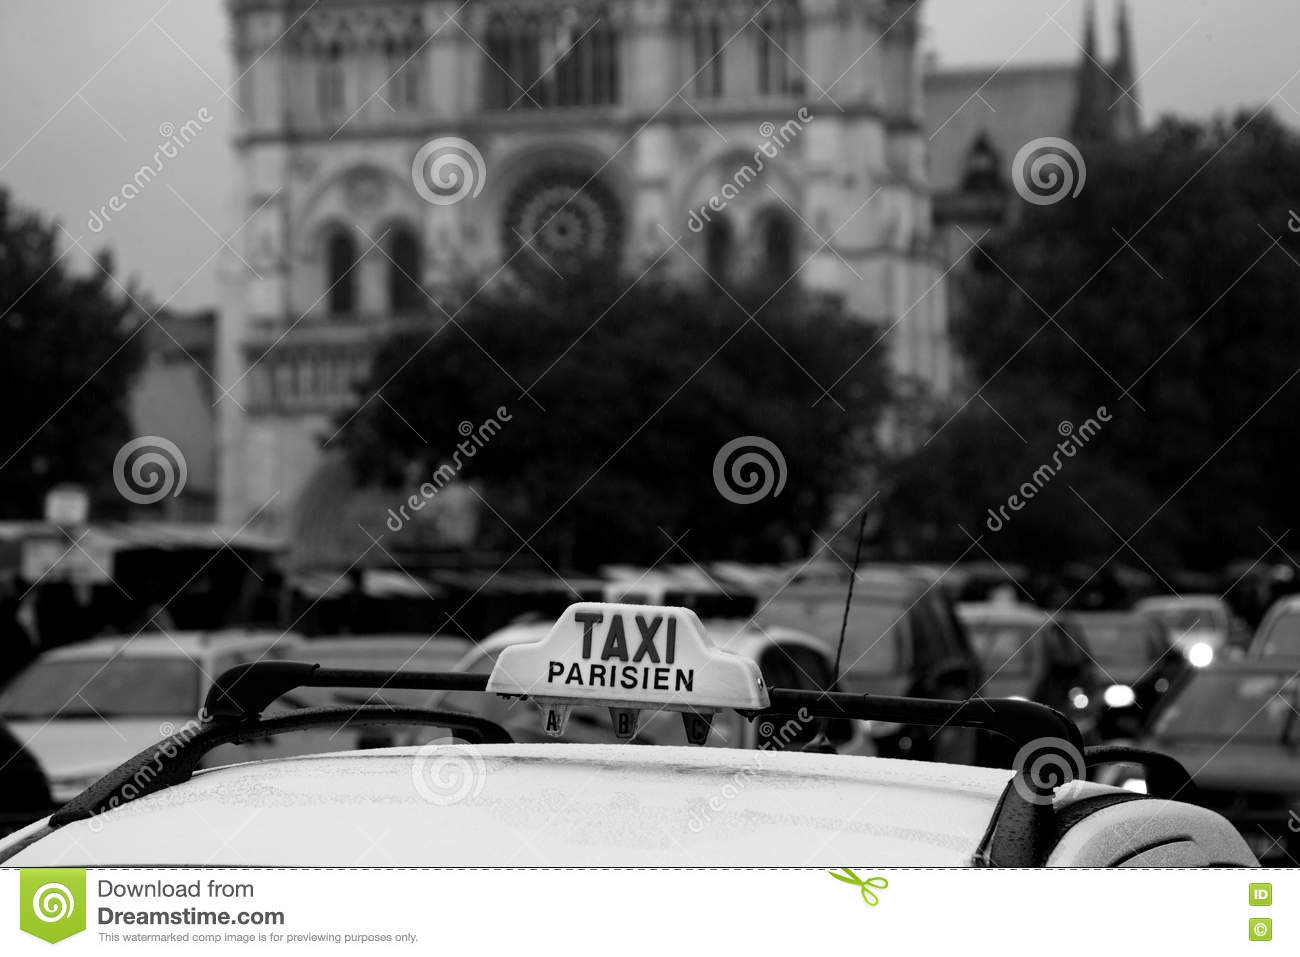 Parisian taxi on the streets of the city.